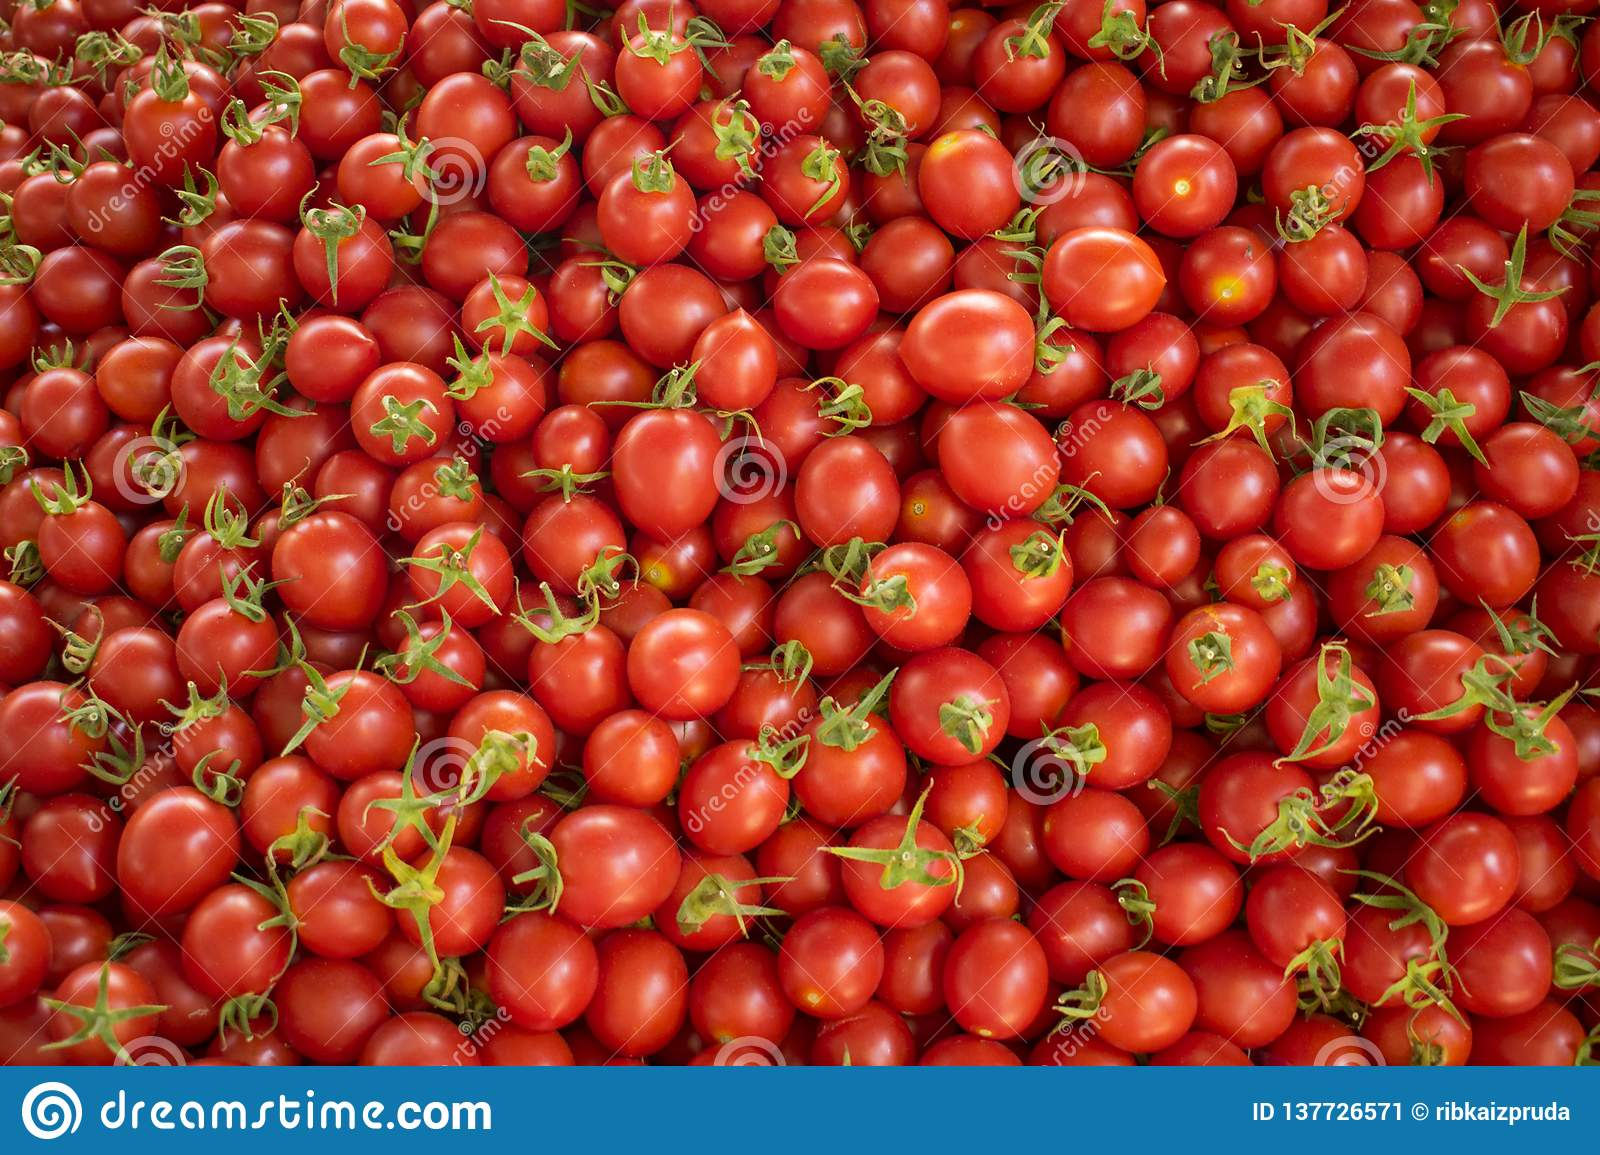 Fresh Red Tomatoes At A Farmers Market Healthy Food